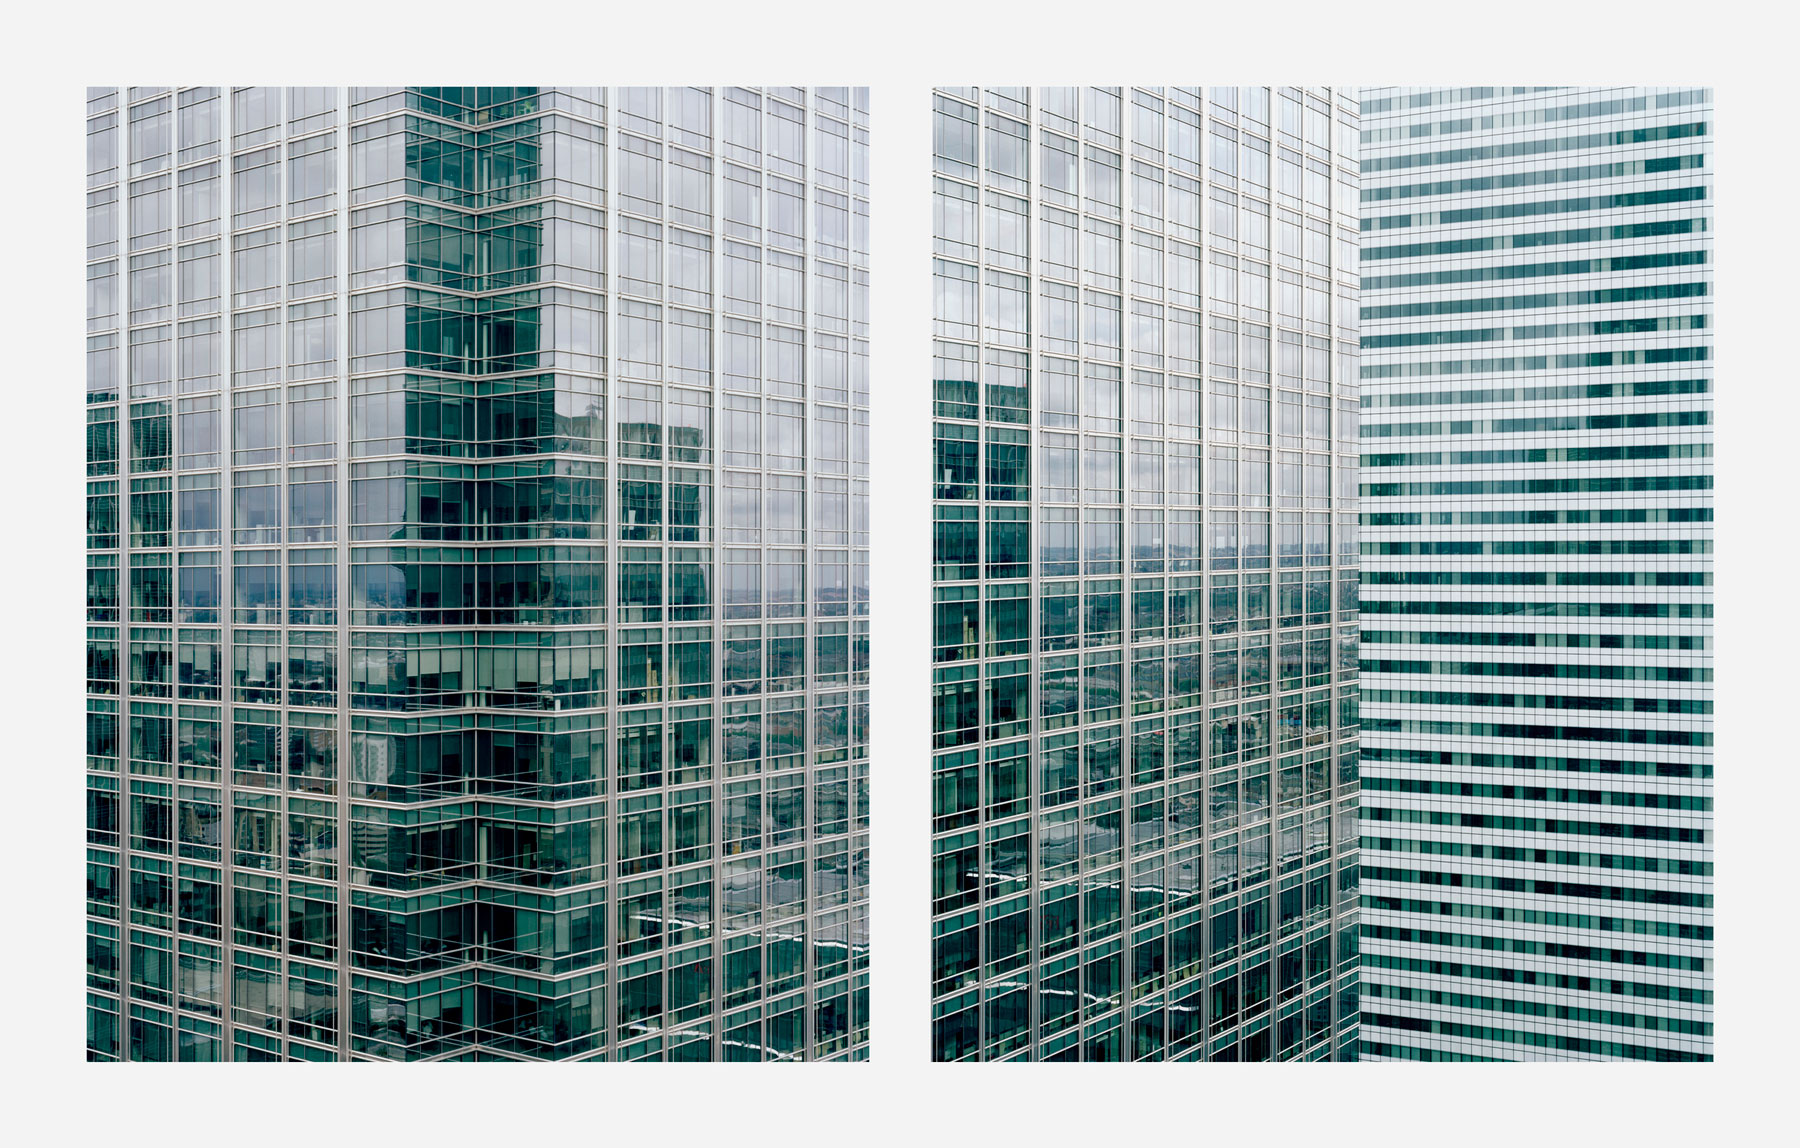 From the series 'Mapping the Zone', Canary Wharf, London, 2010 © Ignacio Acosta